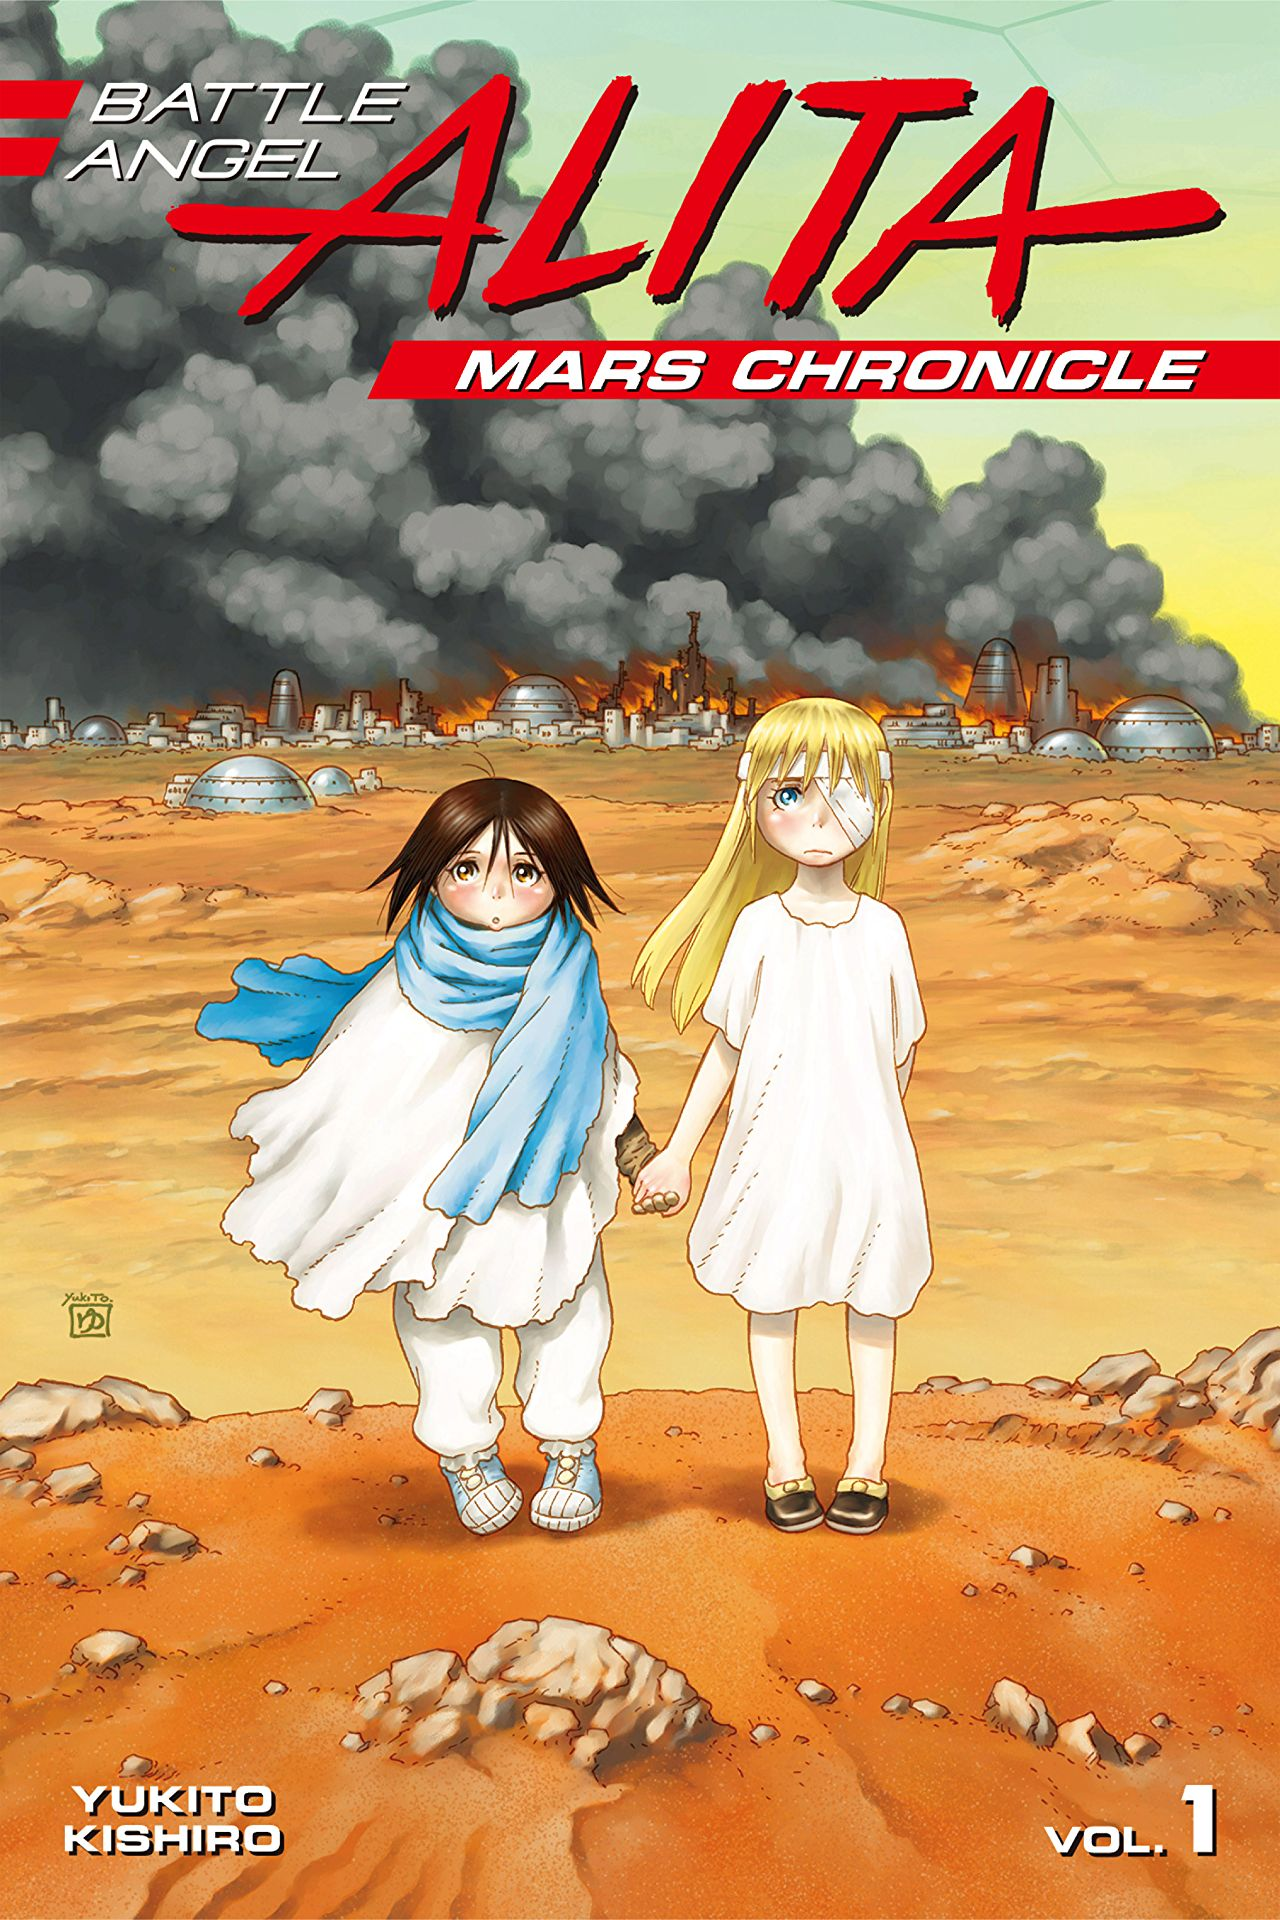 Battle Angel Alita: Mars Chronicle Vol. 1 Review